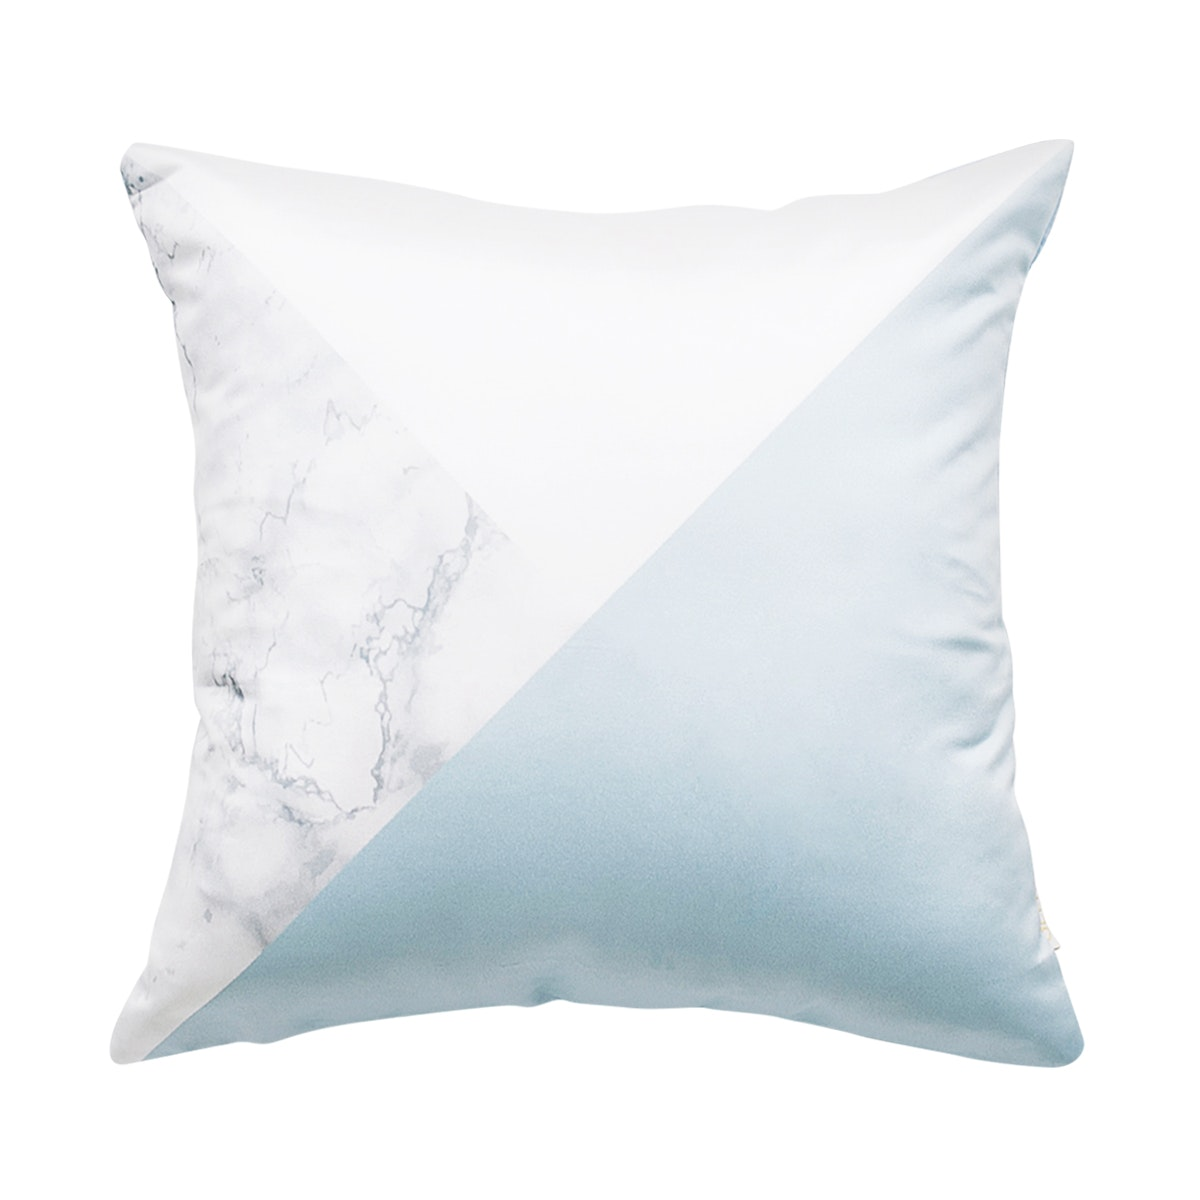 Glerry Home Decor Crystal Springs Cushion 40x40cm